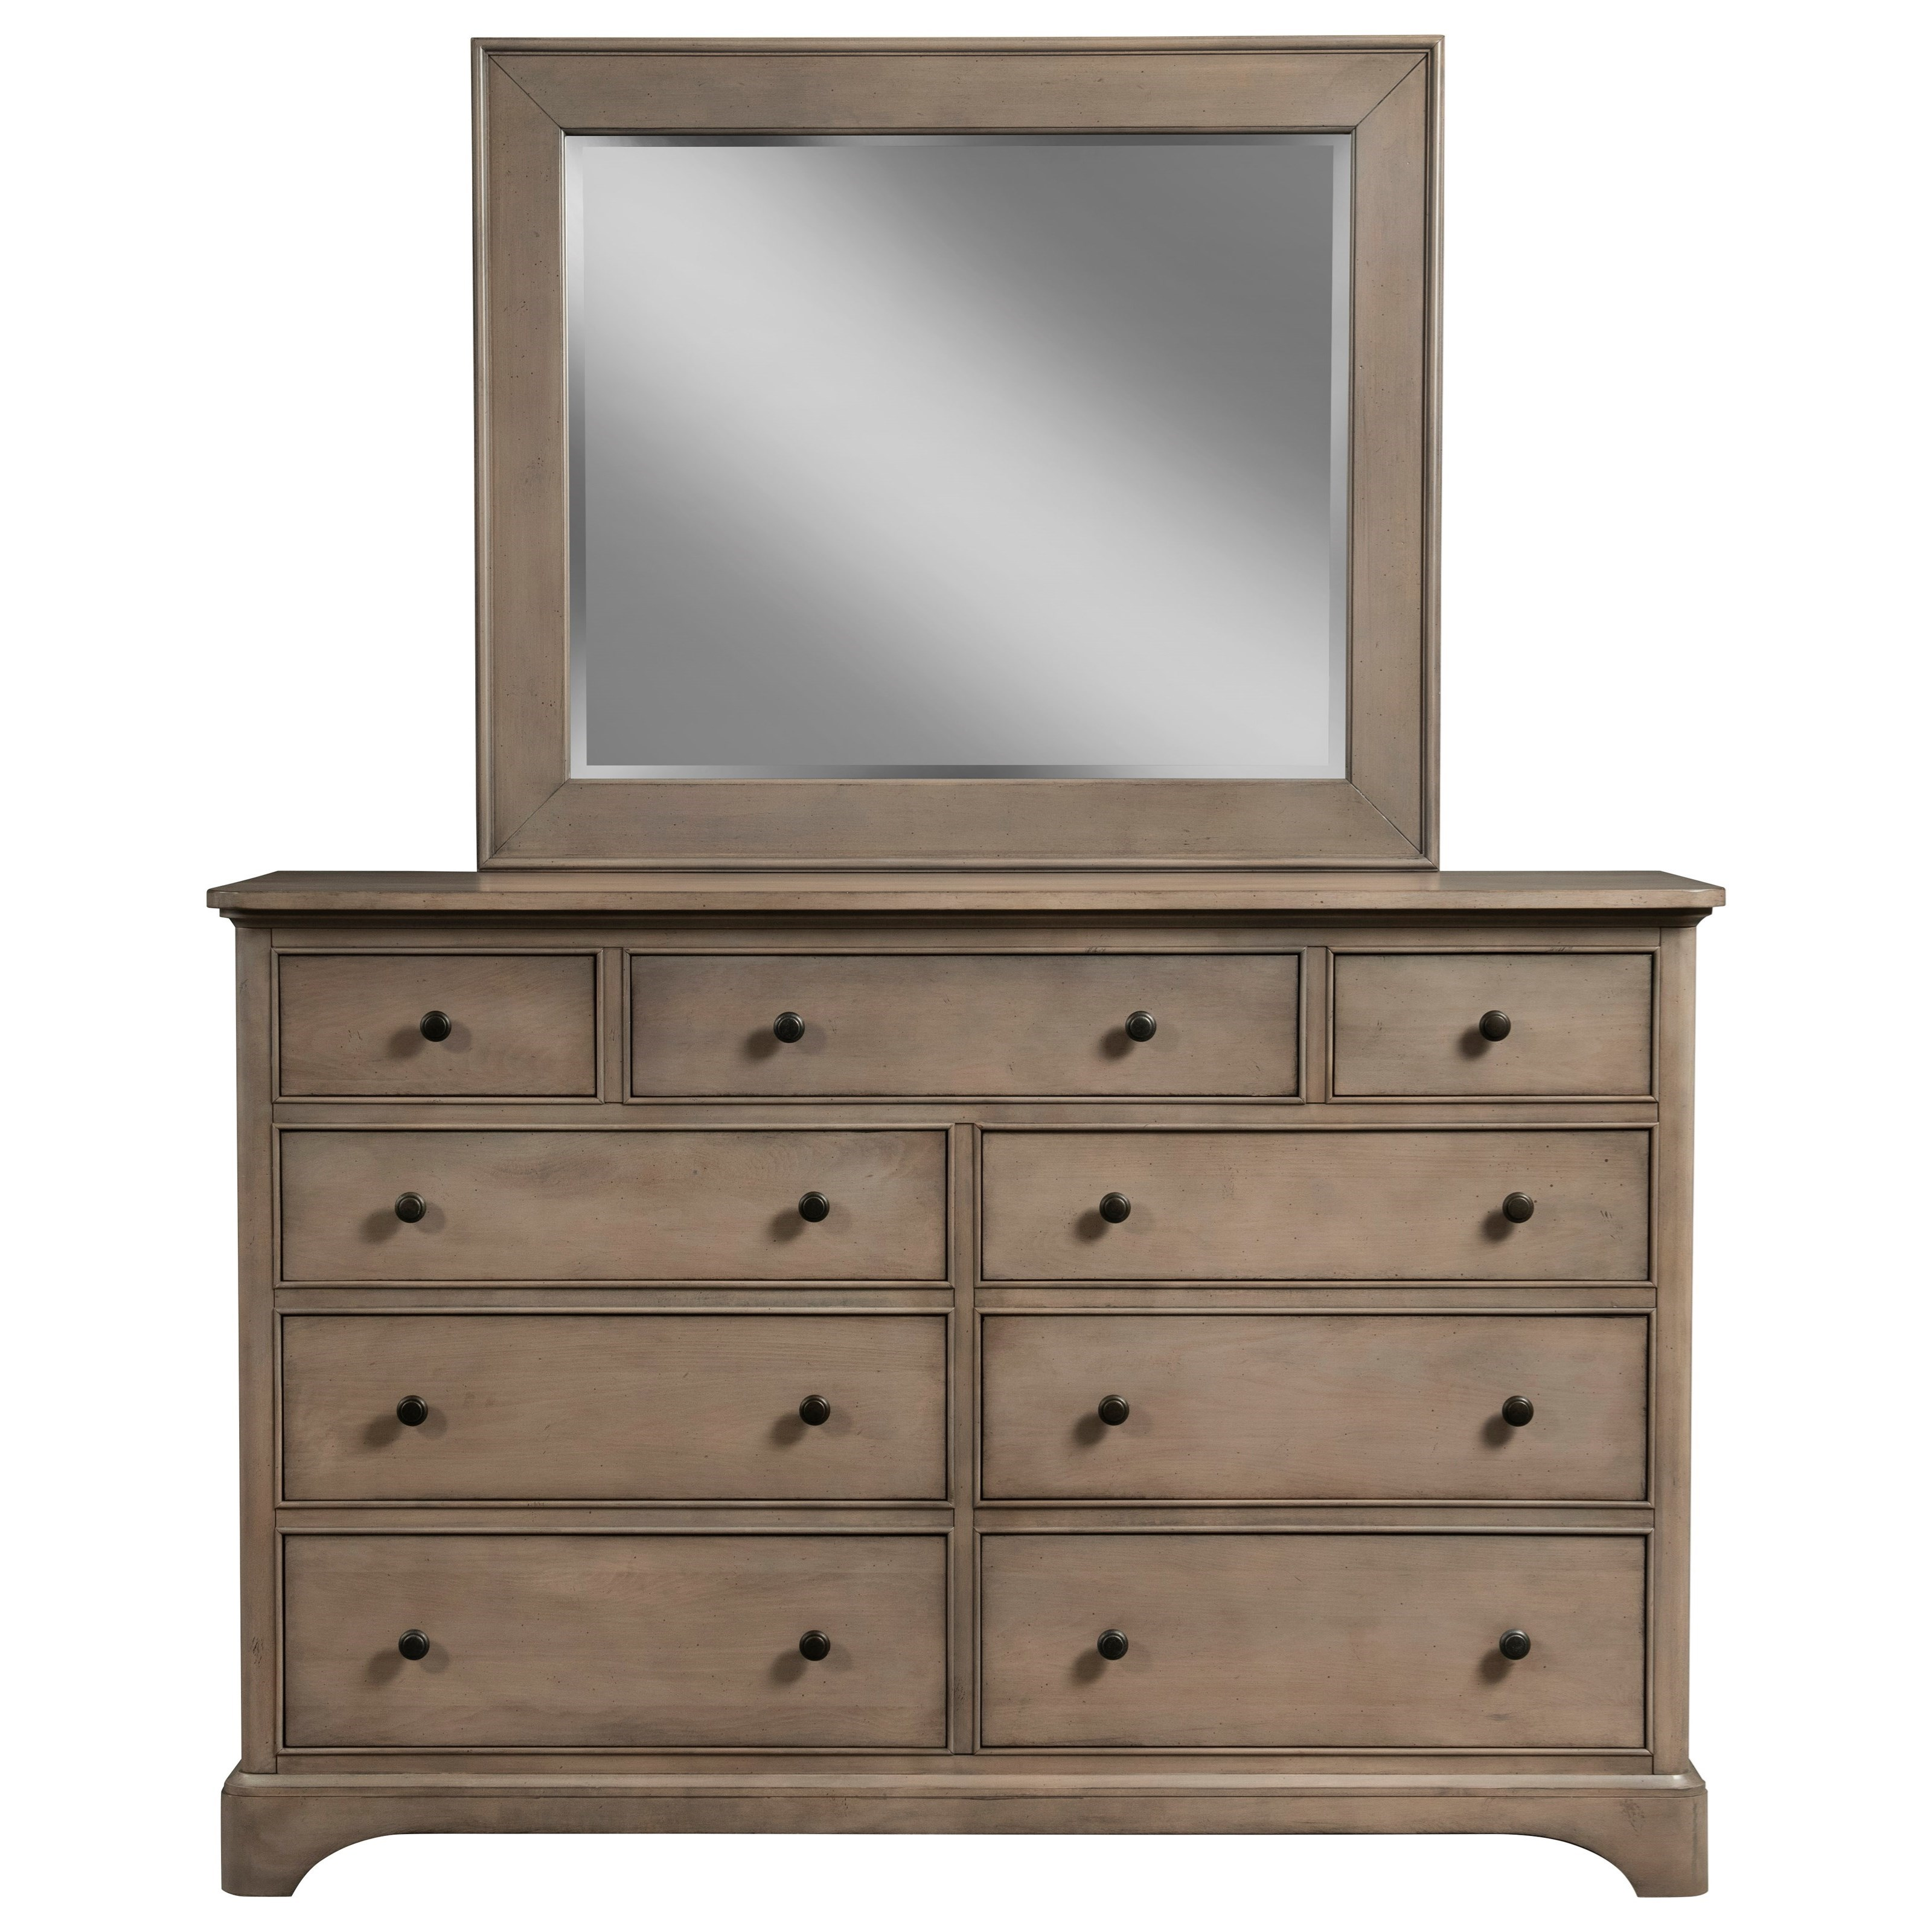 Melrose Dresser and Mirror Combo at Williams & Kay